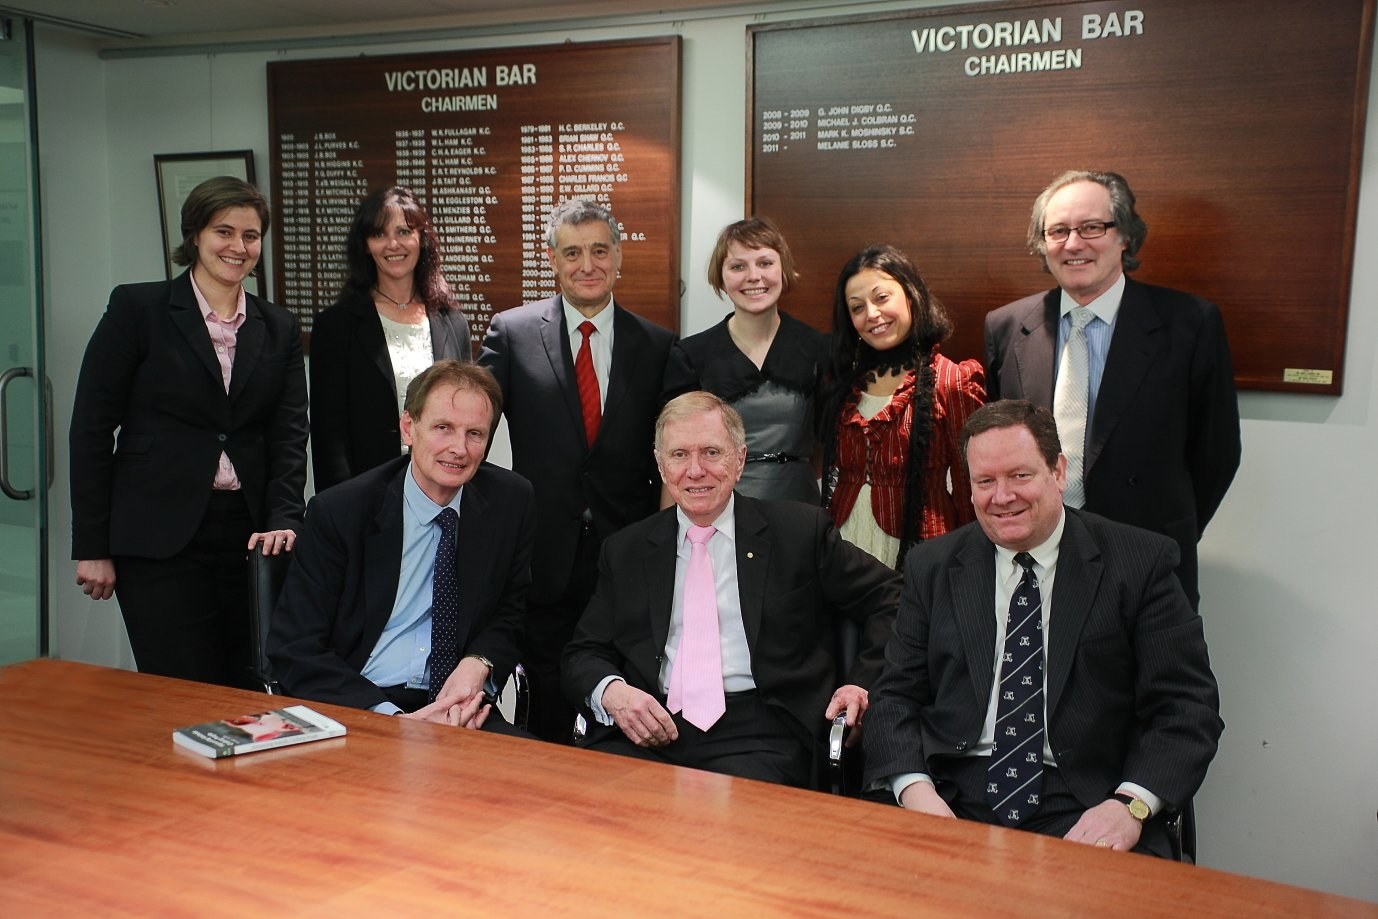 (Back row, l. to r.) Elizabeth Bennett of counsel; Debra Tranter of Oscar's Law; Jack Hammond QC; Anastasia Smietanka, Deputy National Co-ordinator, BAWP; Shatha Hamade, National Co-ordinator; Andrew Phillips of counsel.                    (Front row, l. to r.) Graeme McEwen; the  Hon. Michael Kirby AC CMG; Josh Wilson SC.